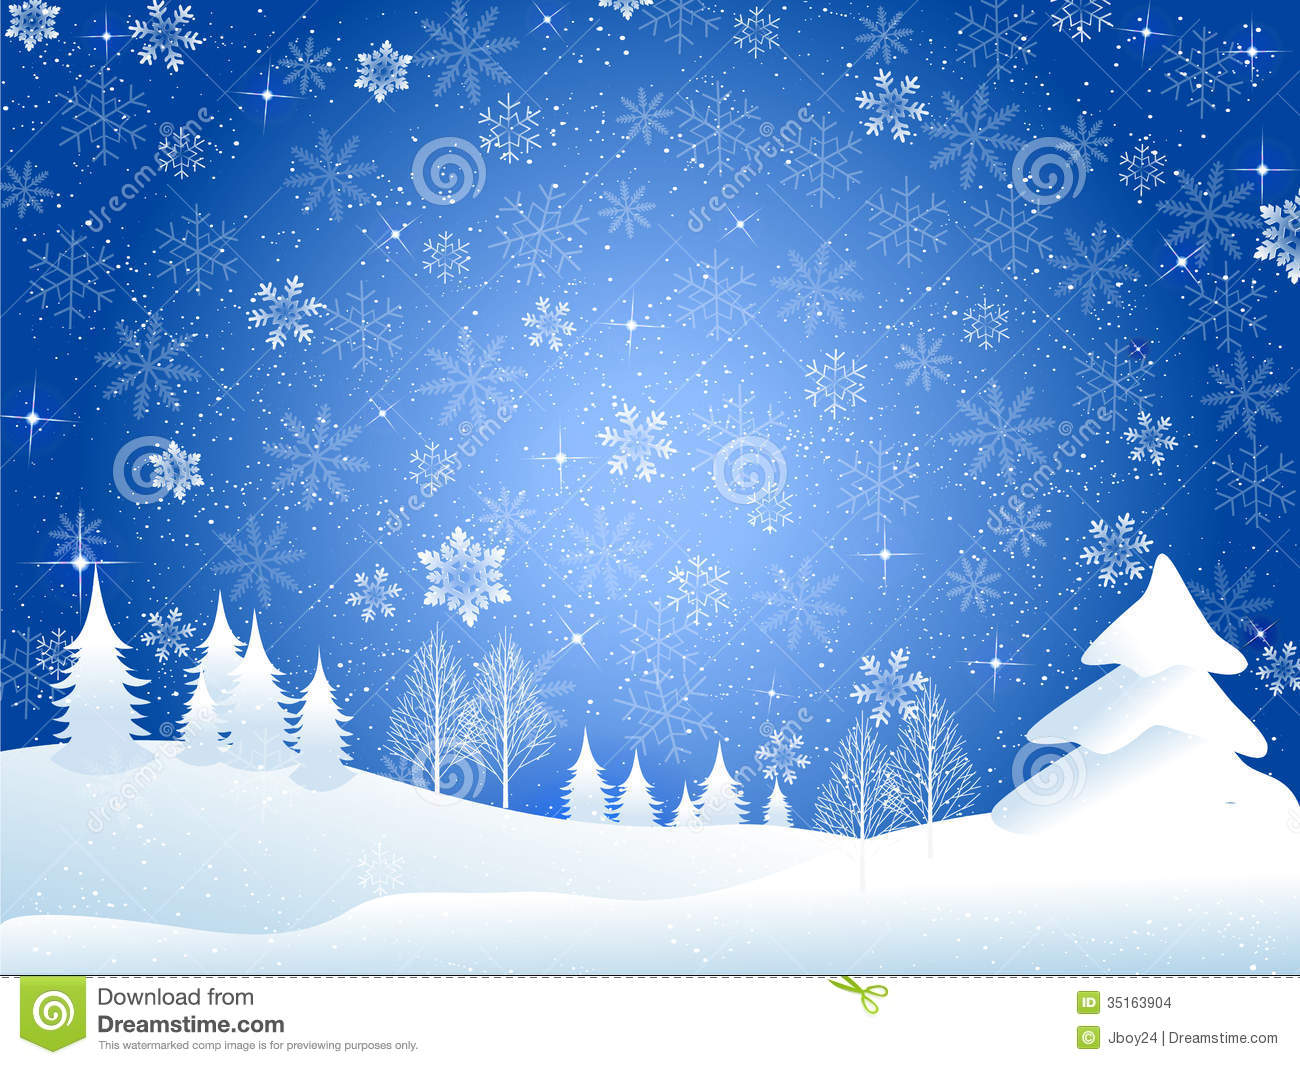 Snowy Background Clipart - Clipart Kid